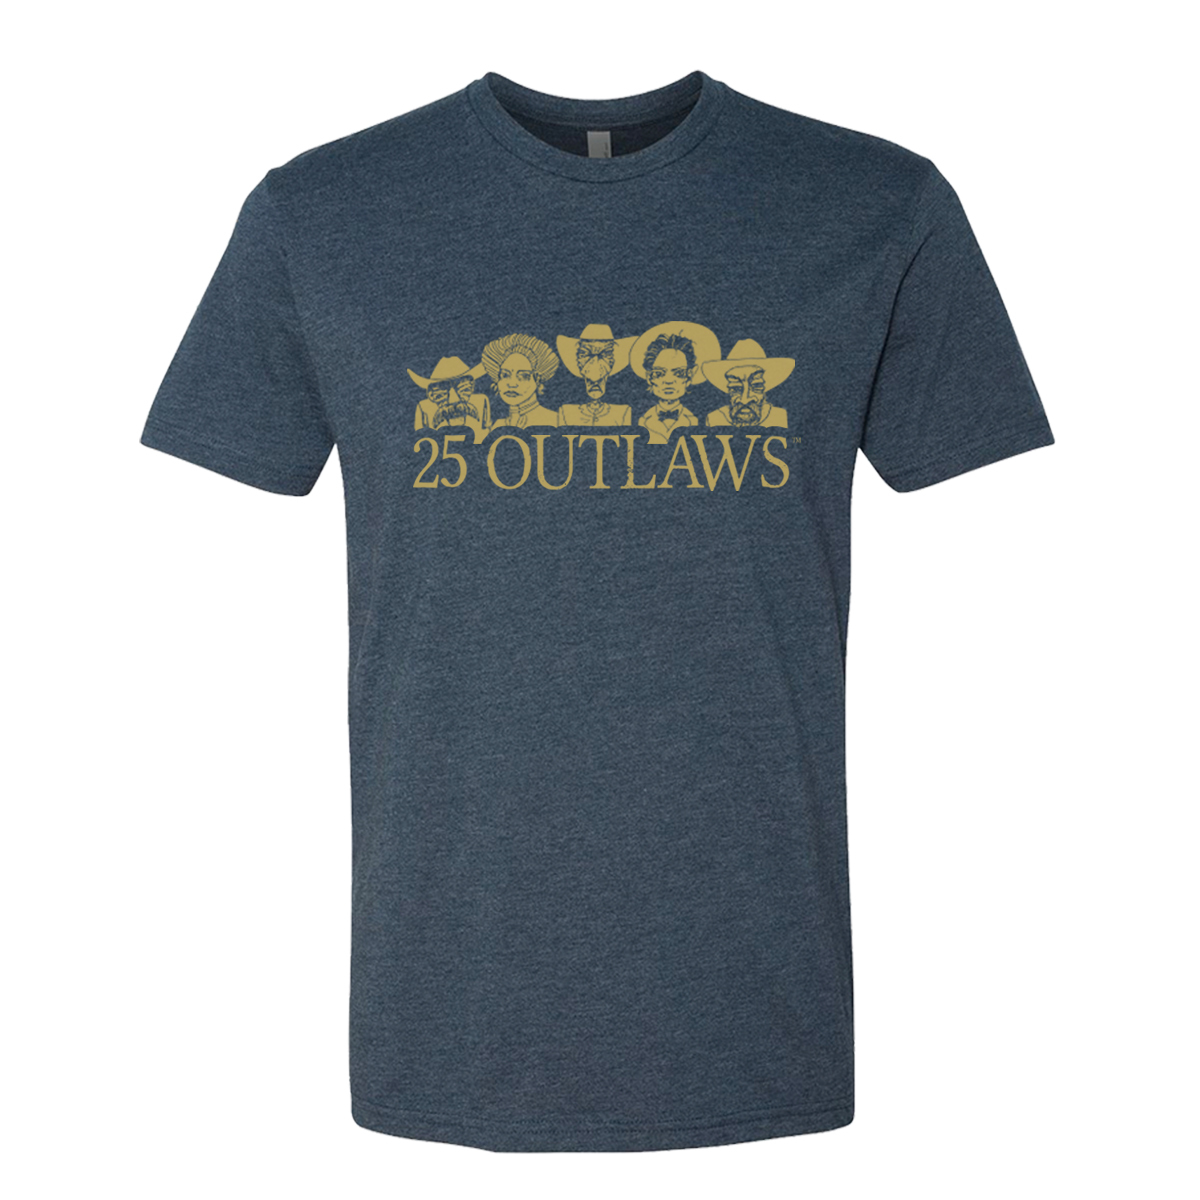 25 Outlaws Character T-Shirt